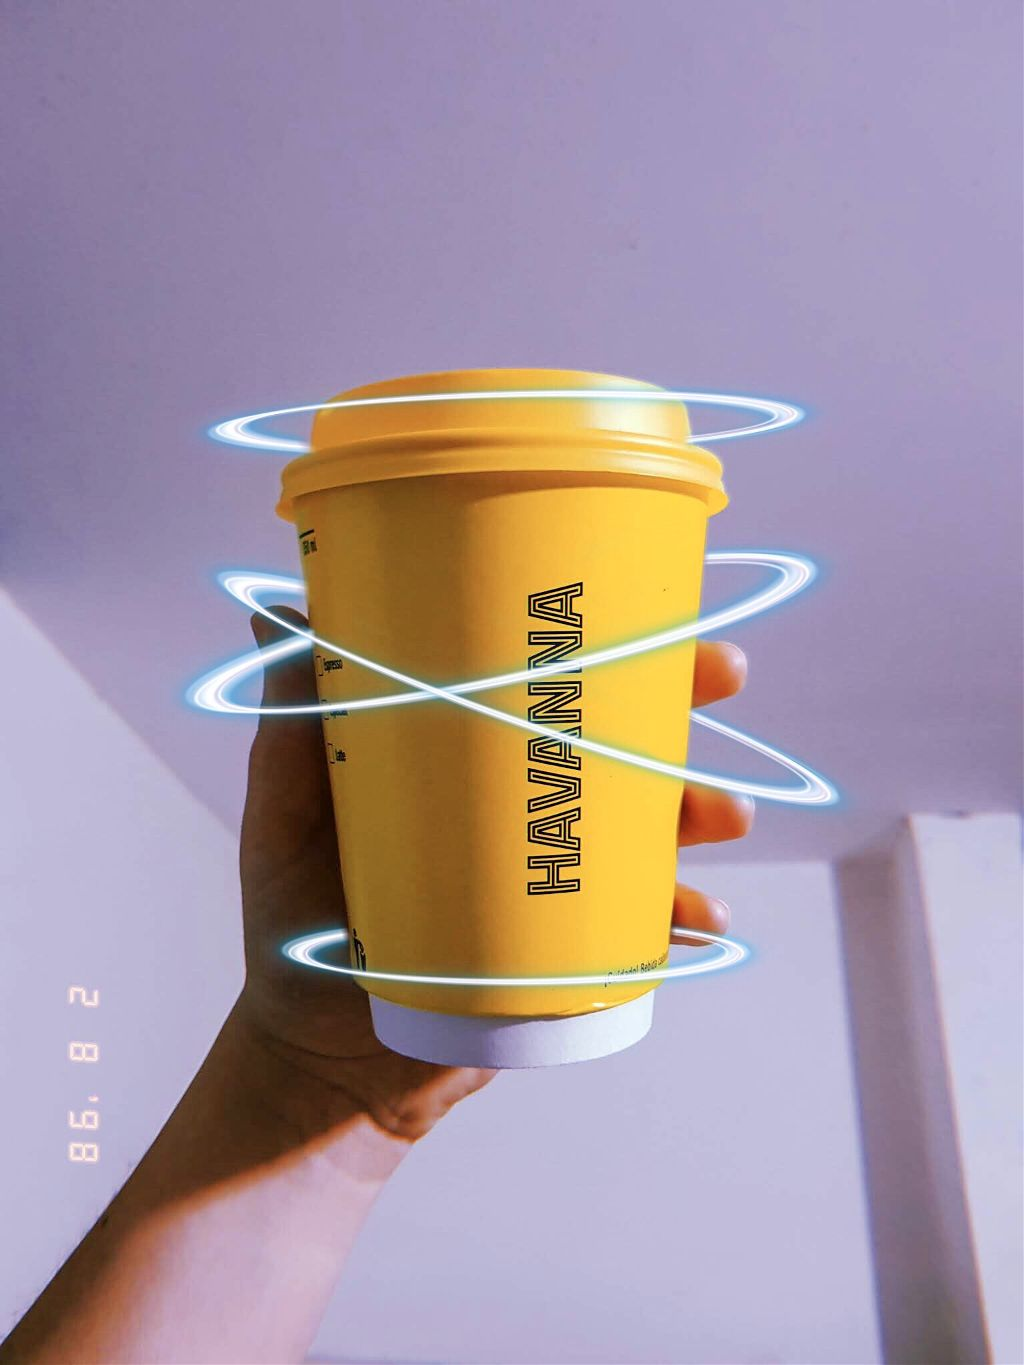 #freetoedit #cup #art #halo #yellow #shine #light